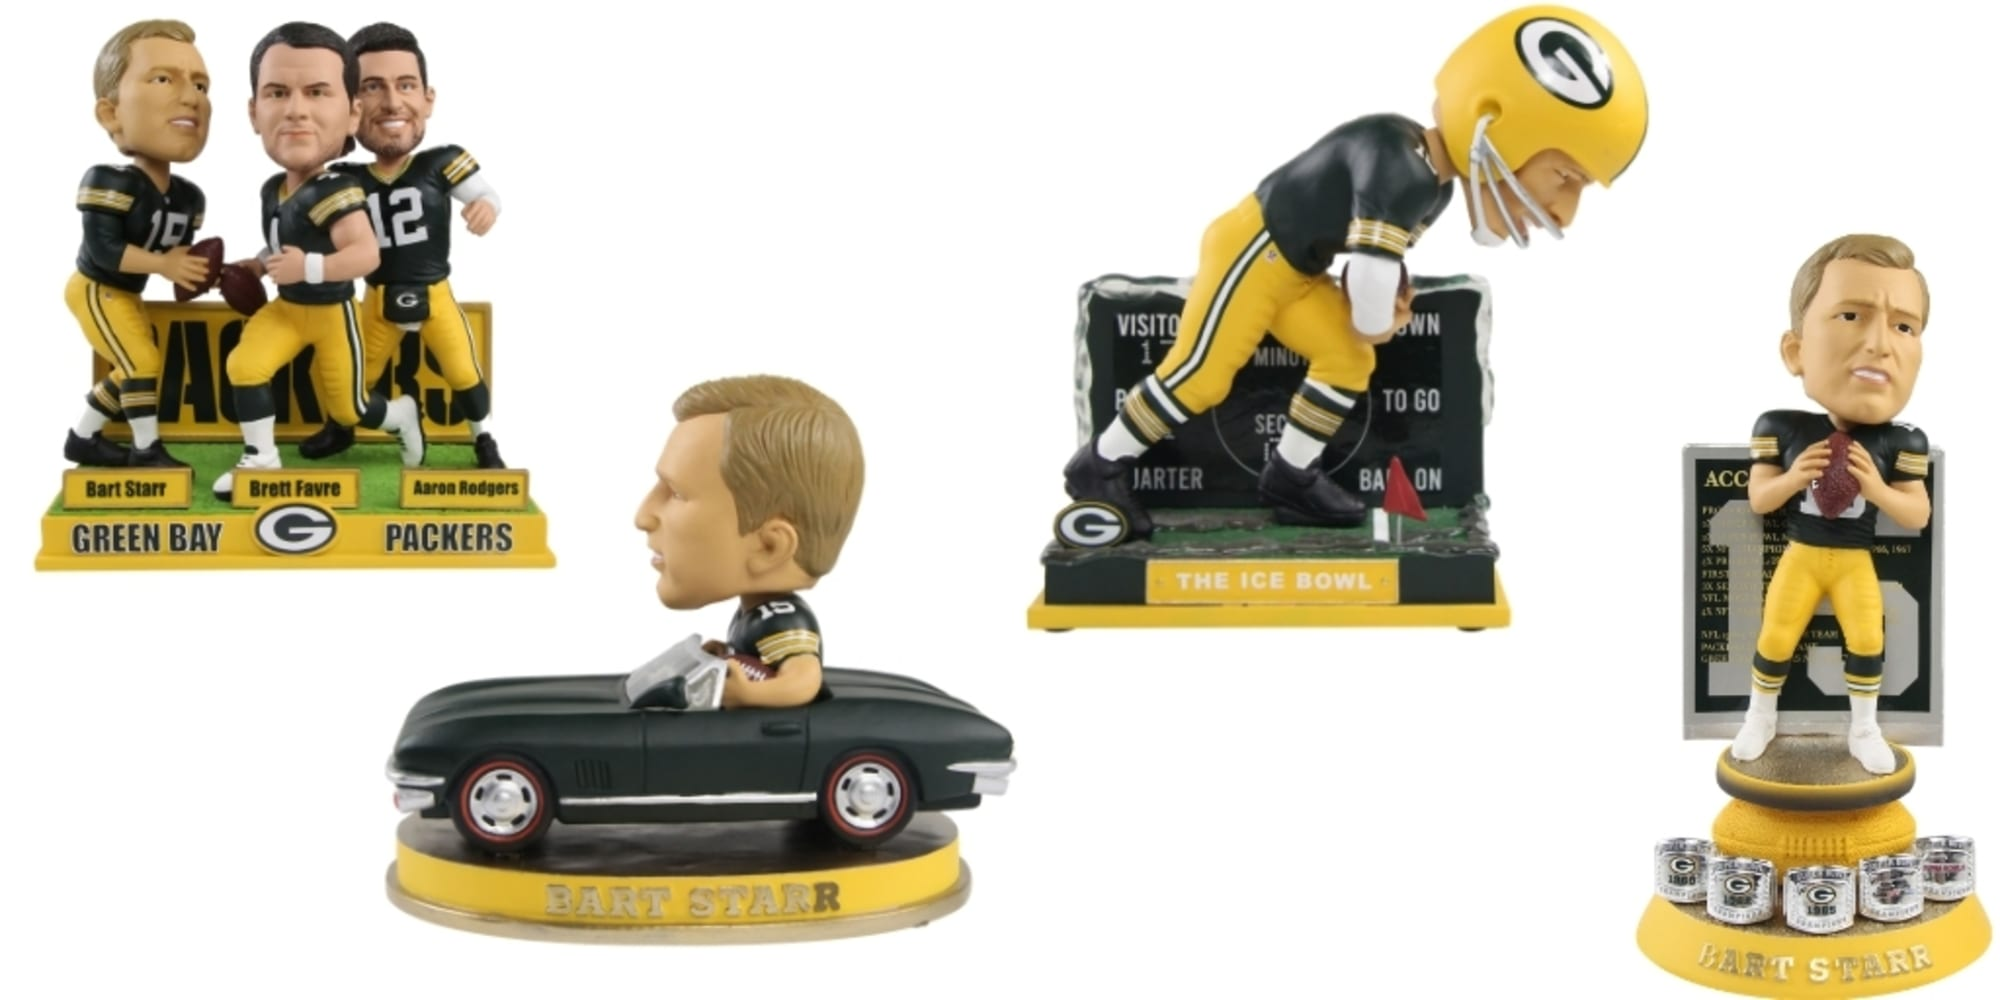 Green Bay Packers fans need to check out this Bart Starr bobblehead collection